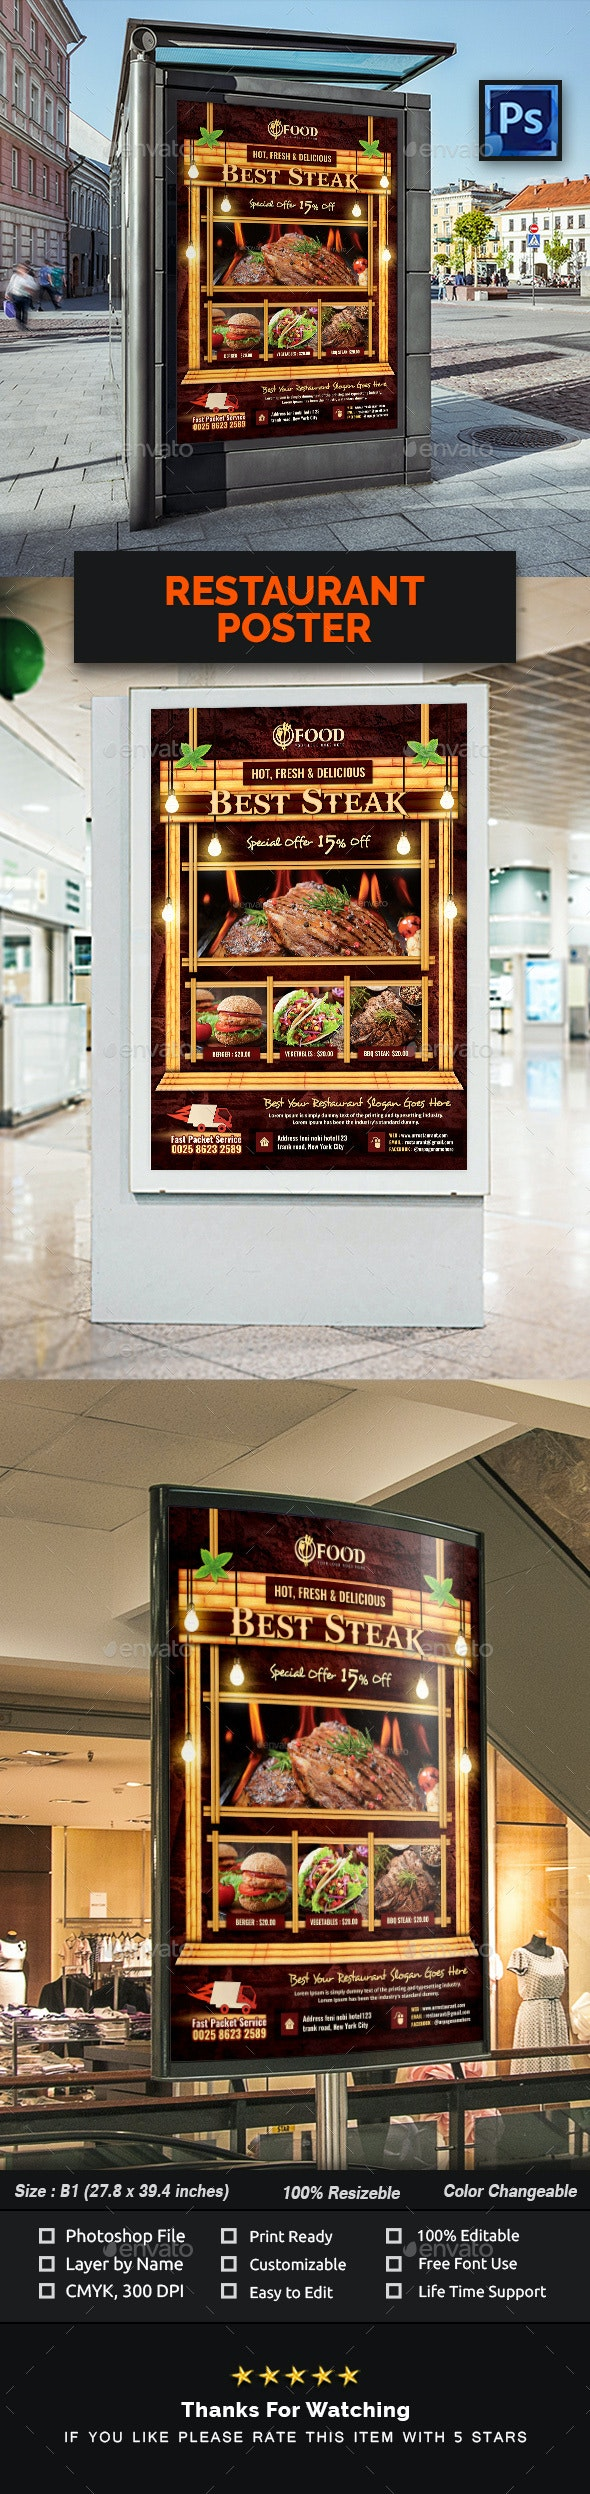 Restaurant Poster Template - Signage Print Templates